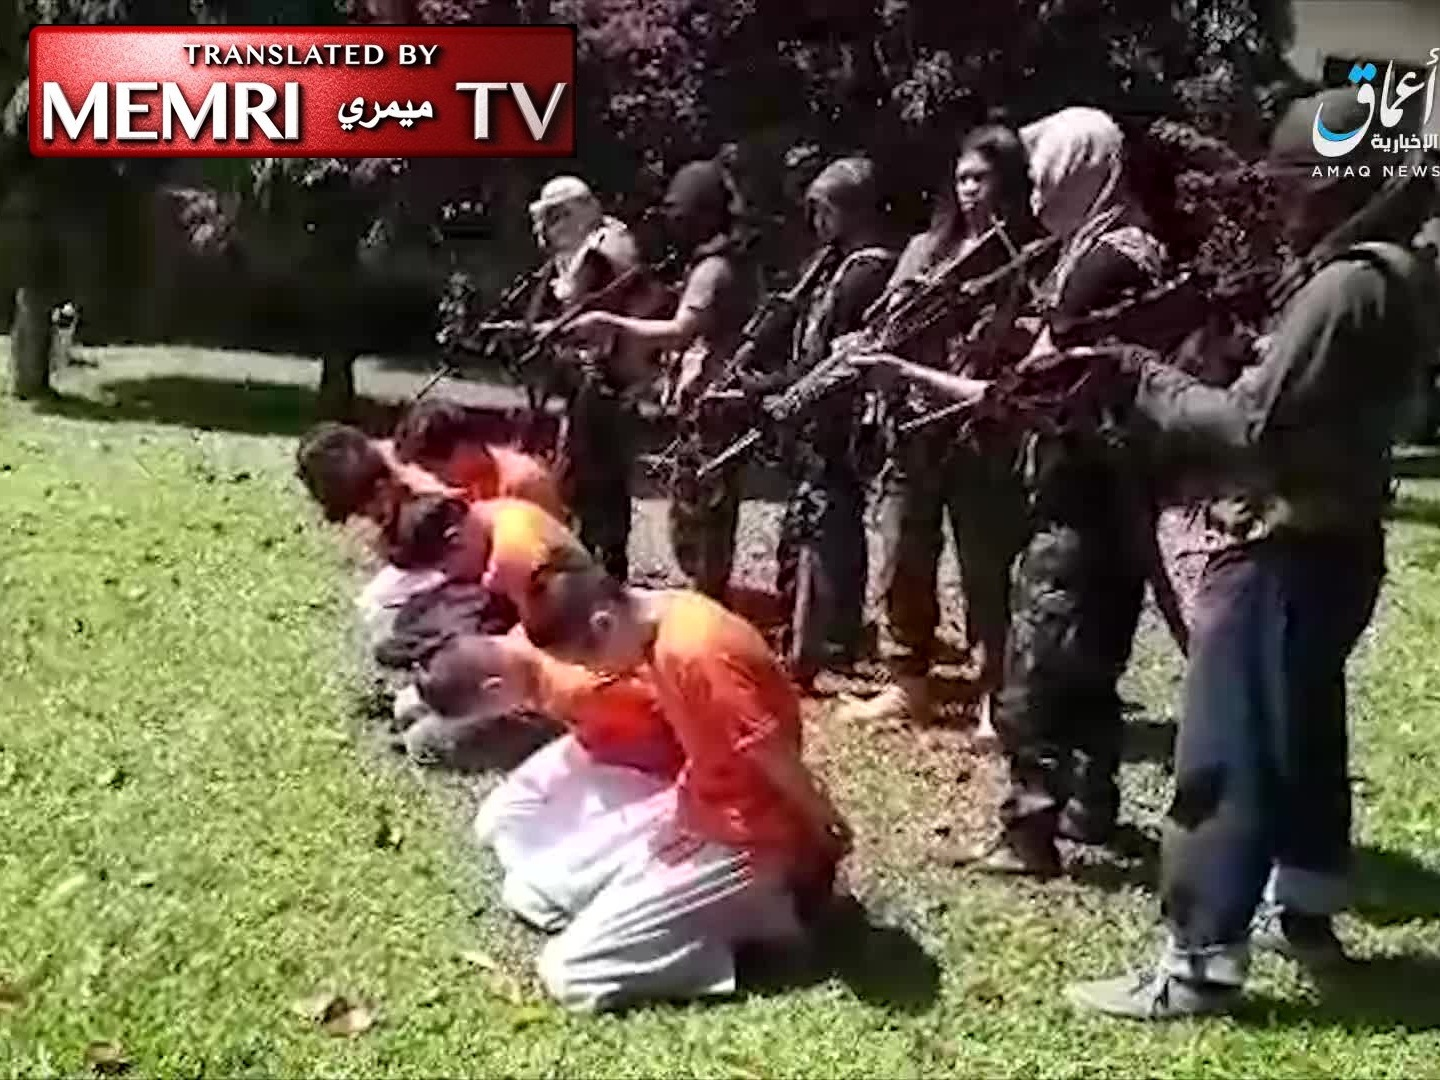 ISIS Video Documents Execution Of Christians In ‎Philippines (Warning: Graphic Footage)